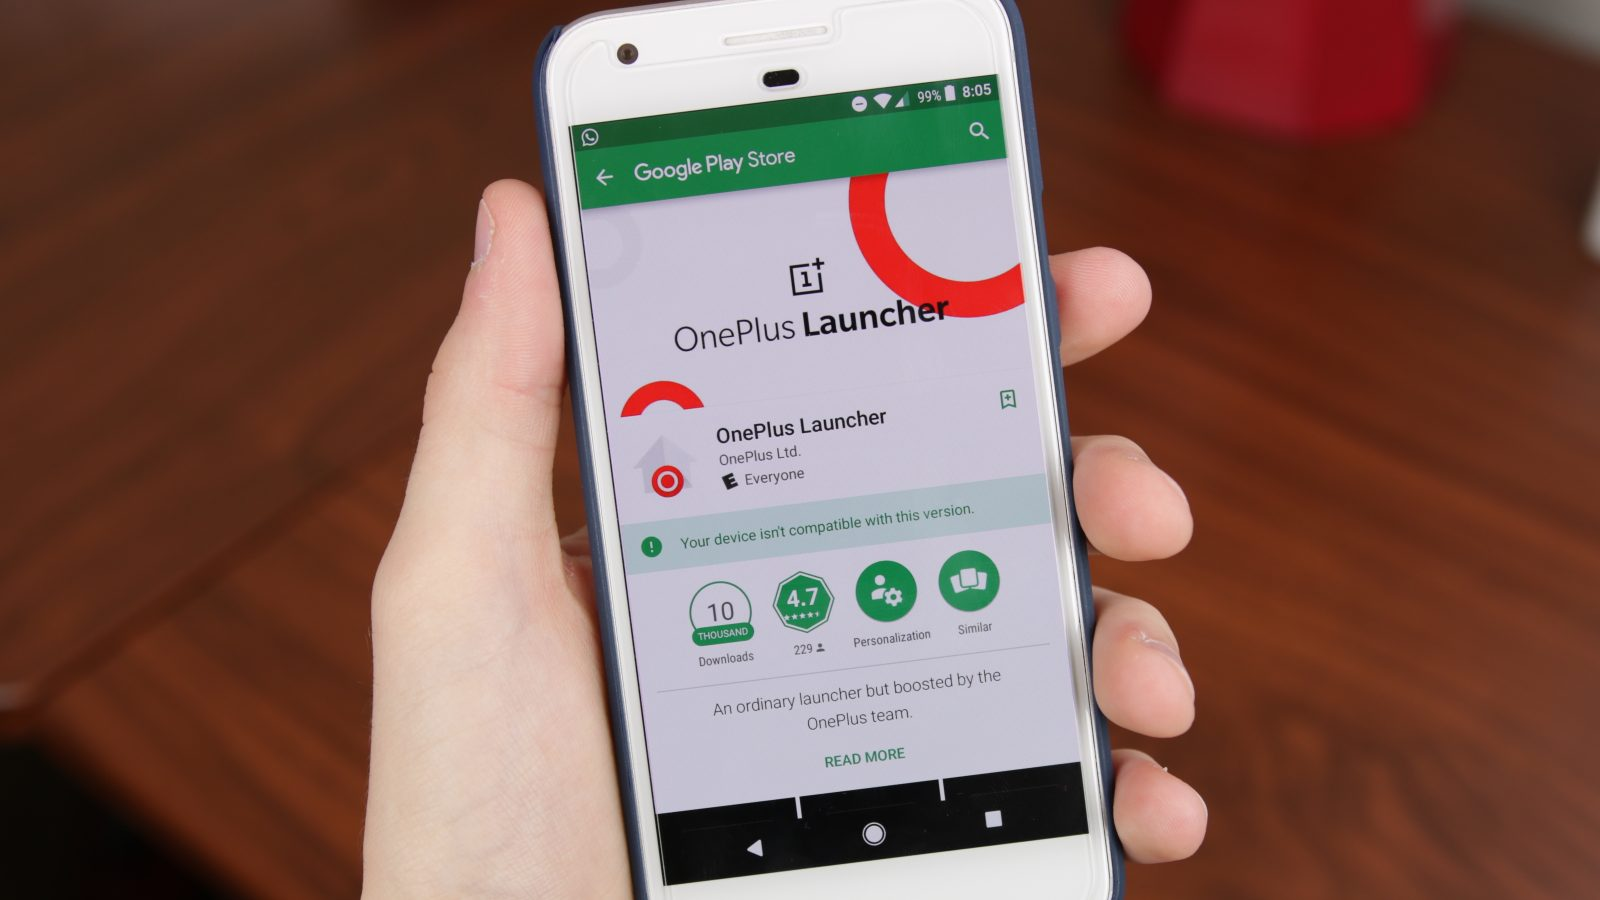 The OnePlus Launcher is now on the Google Play Store (again